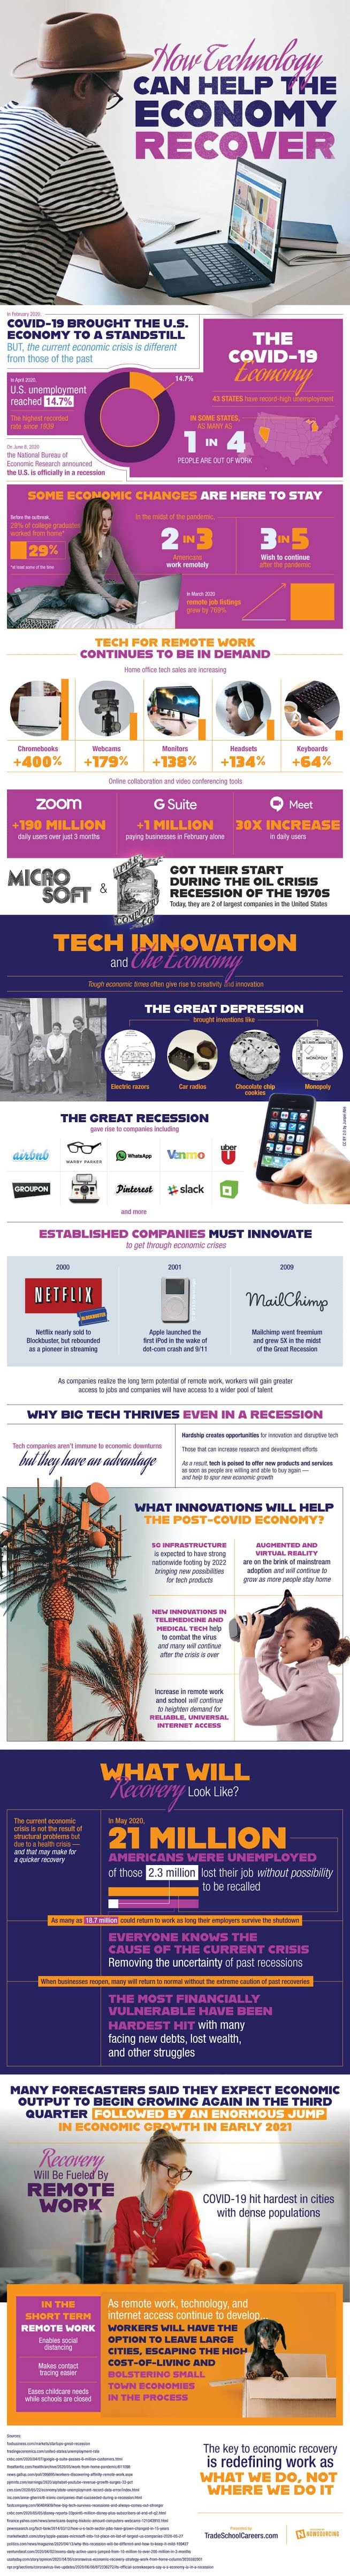 How Technology Will The Economy Recover # Infographic